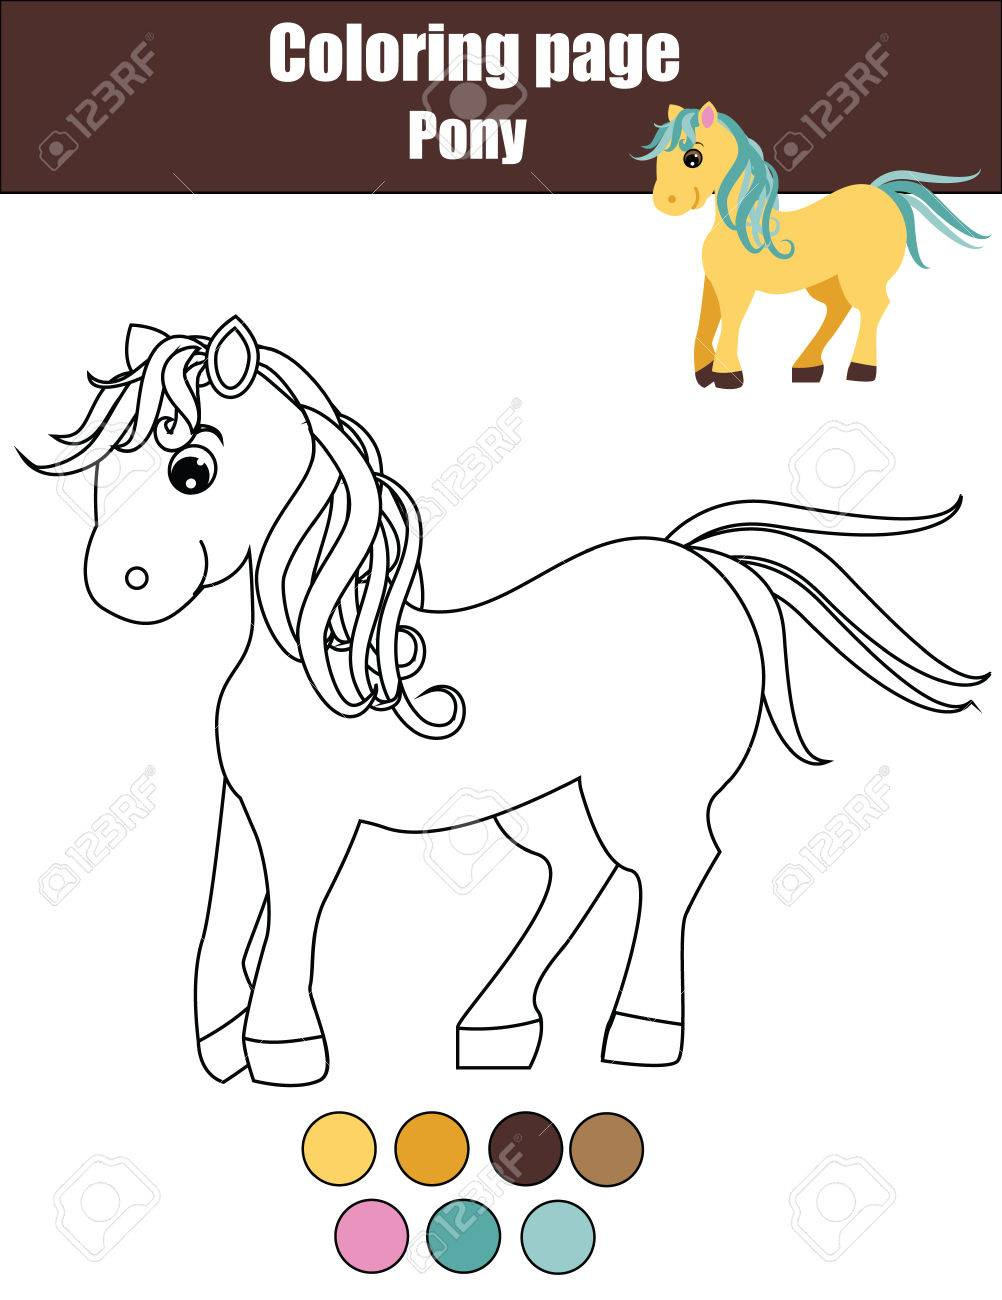 Coloriage Bebe Poney.Coloriage A Poney Mignon Couleur De La Faible Activite De Dessin De